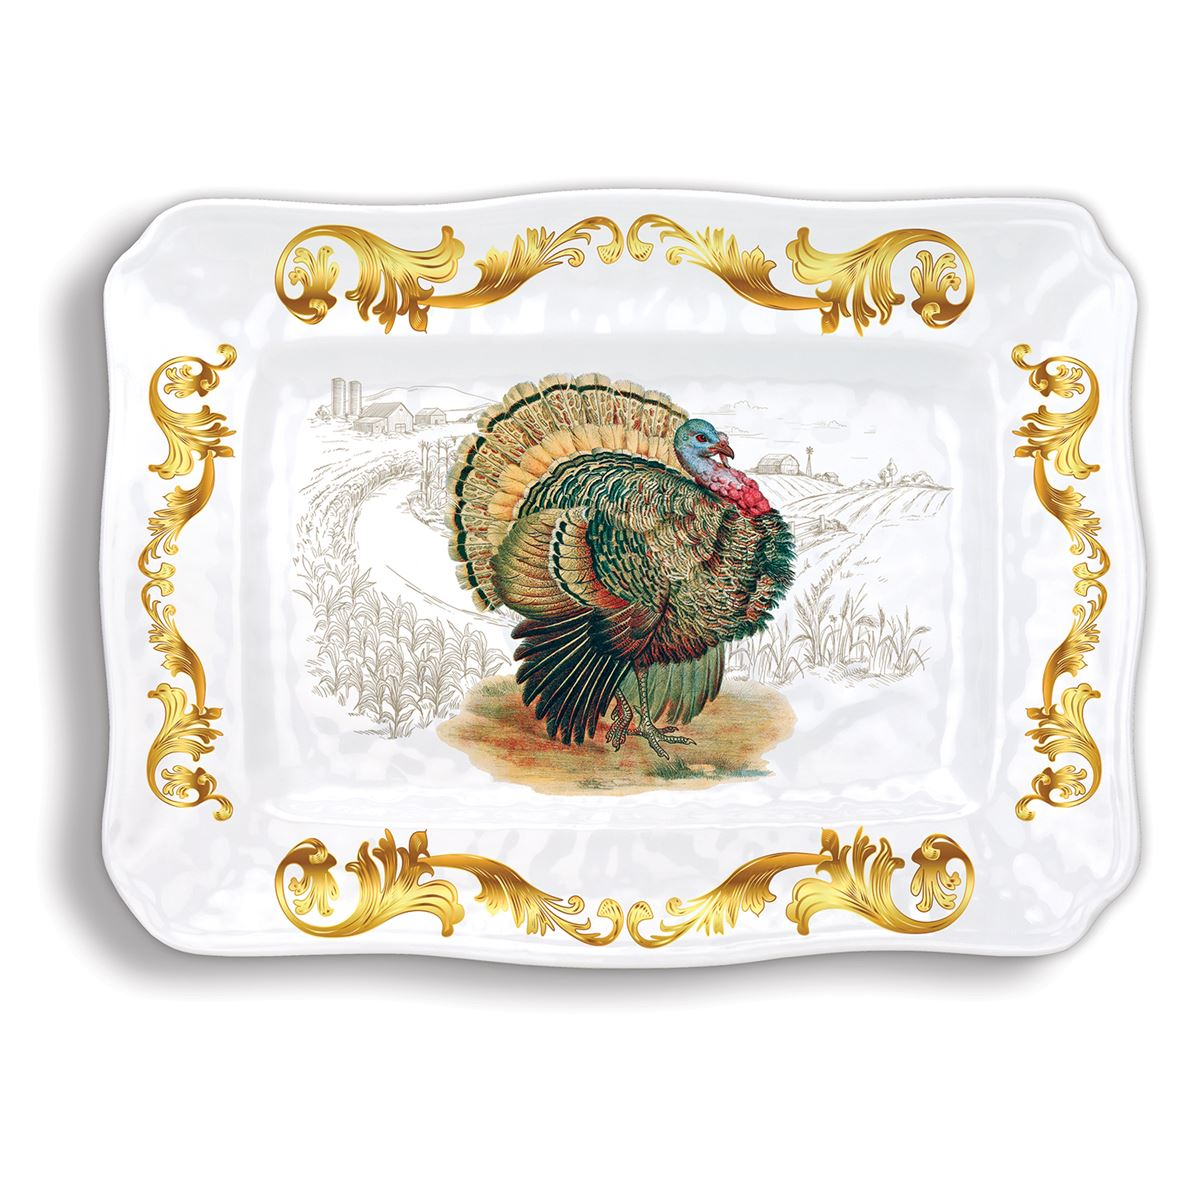 Michel Design Works Fall Harvest Large Melamine Platter | Putti Thanksgiving